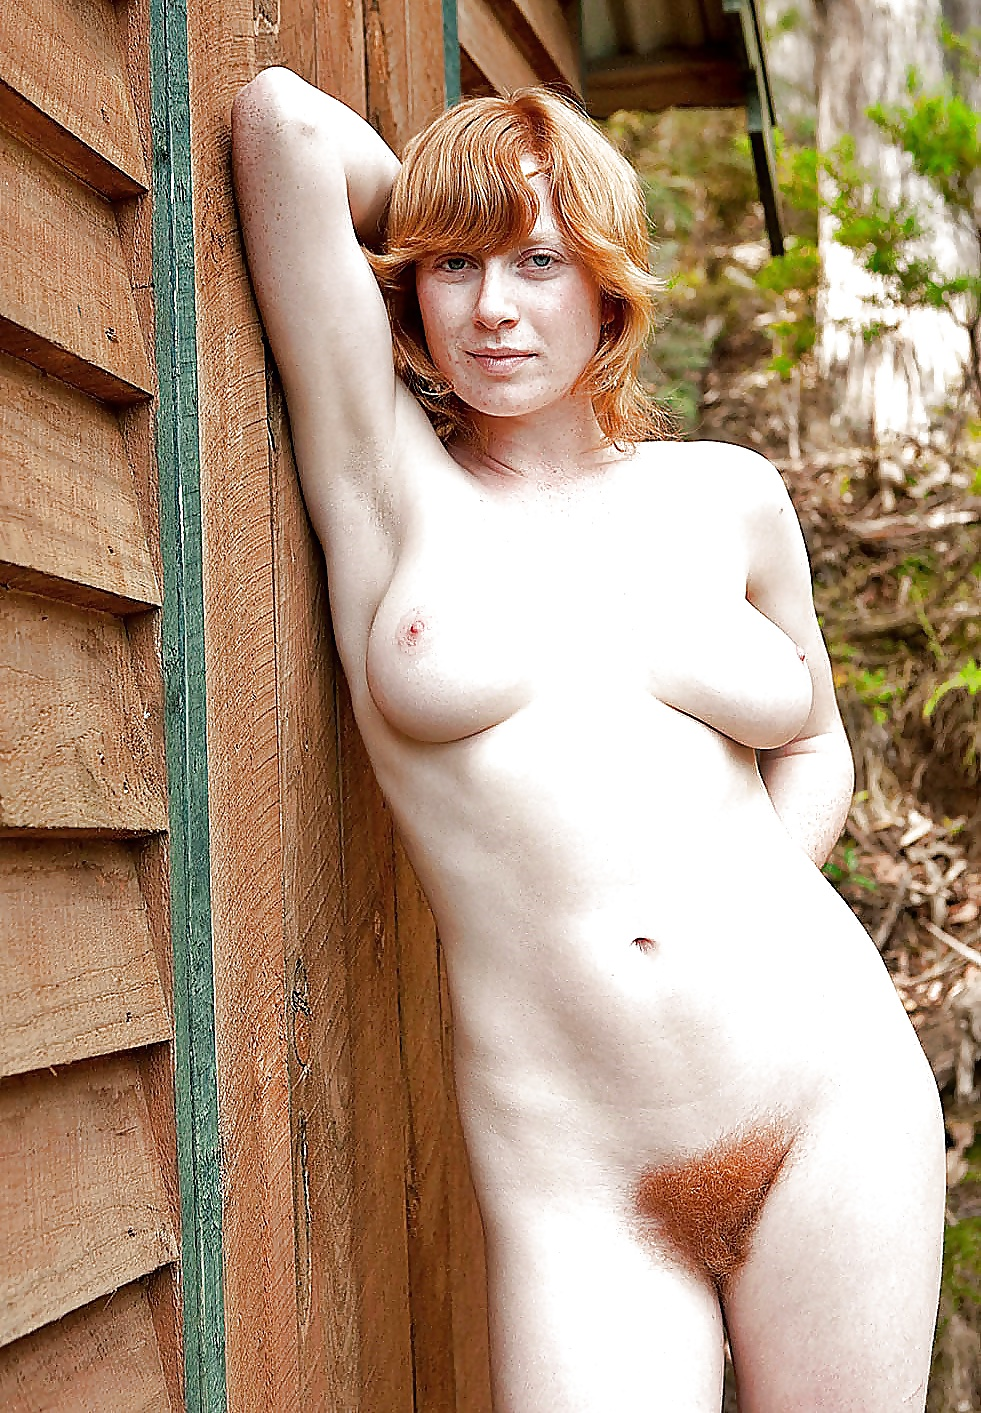 Naked redhead gallery